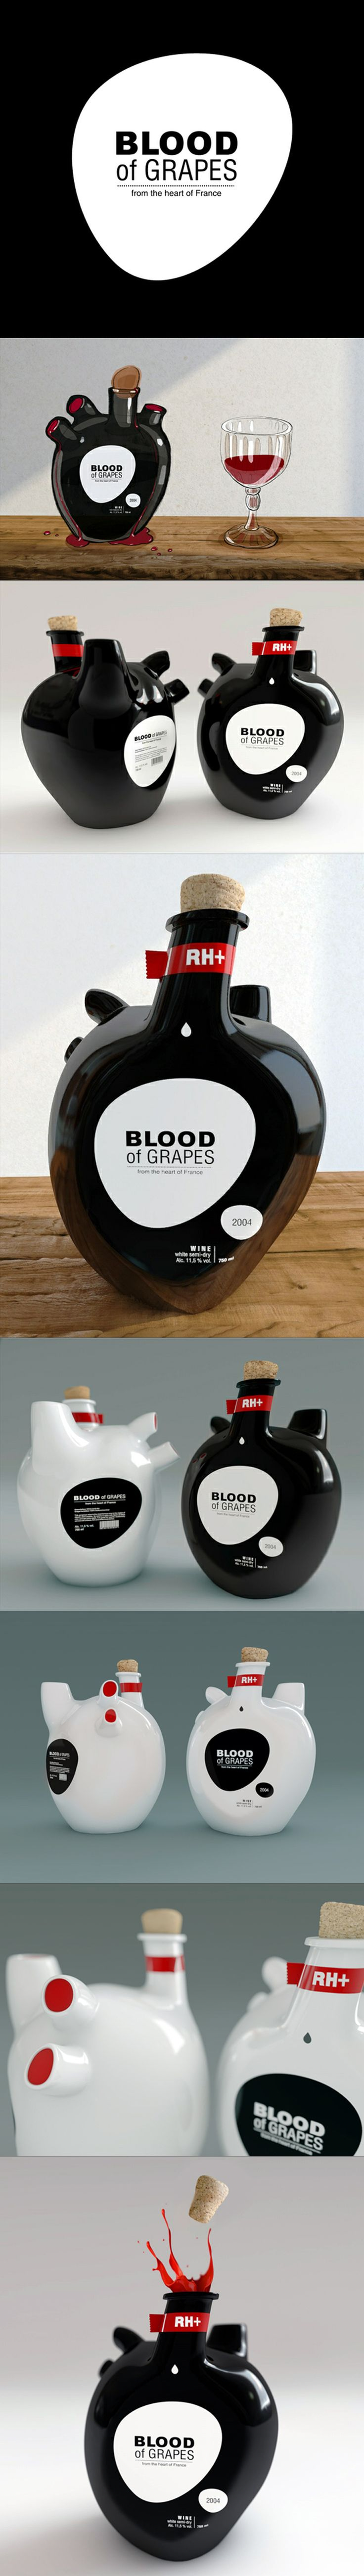 Showcase unique packaging | blood of grapes by constantin bolimond